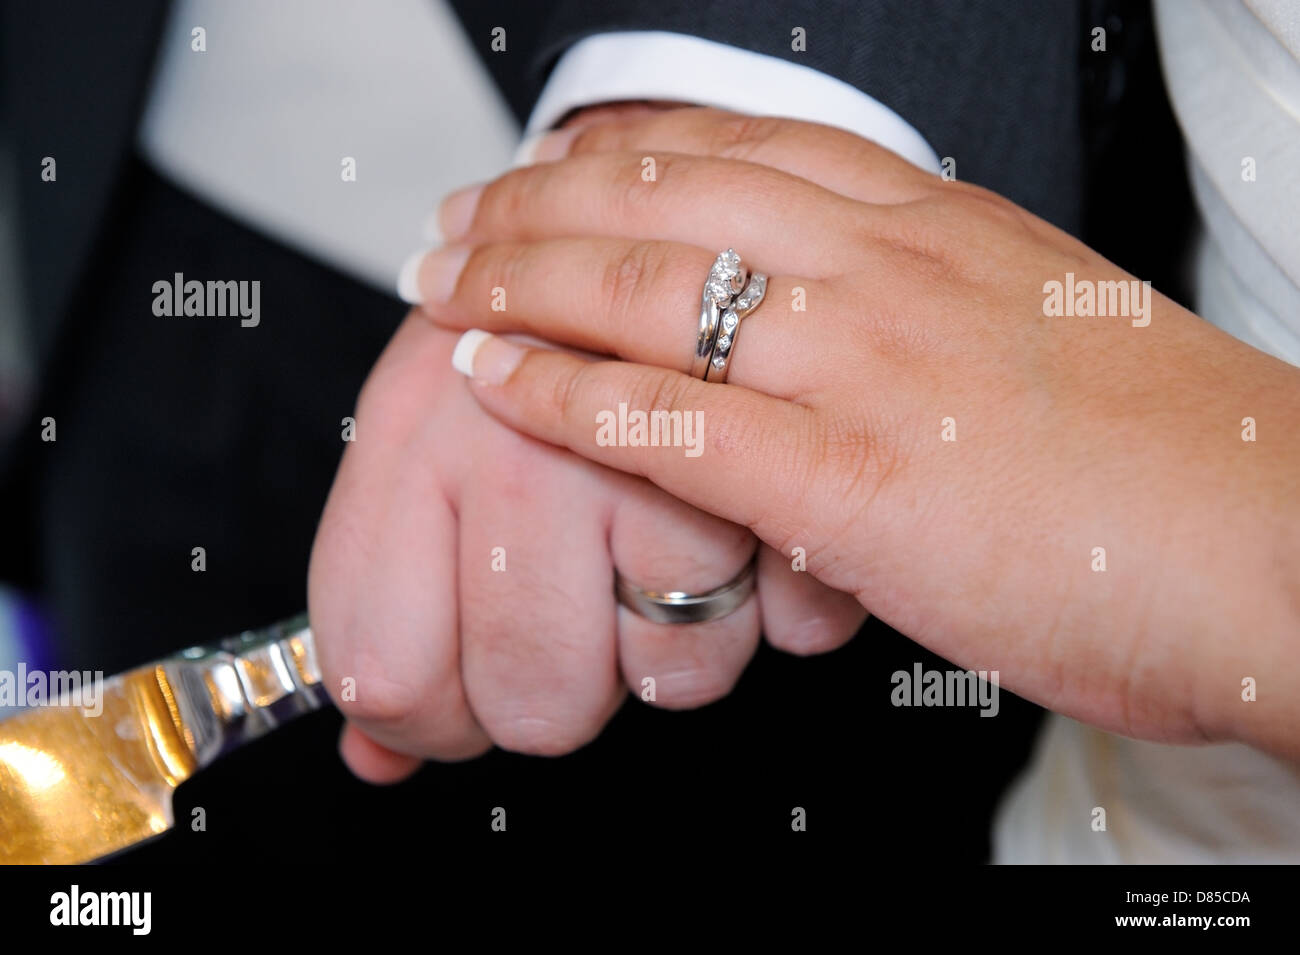 Showing Rings Stock Photos & Showing Rings Stock Images - Alamy